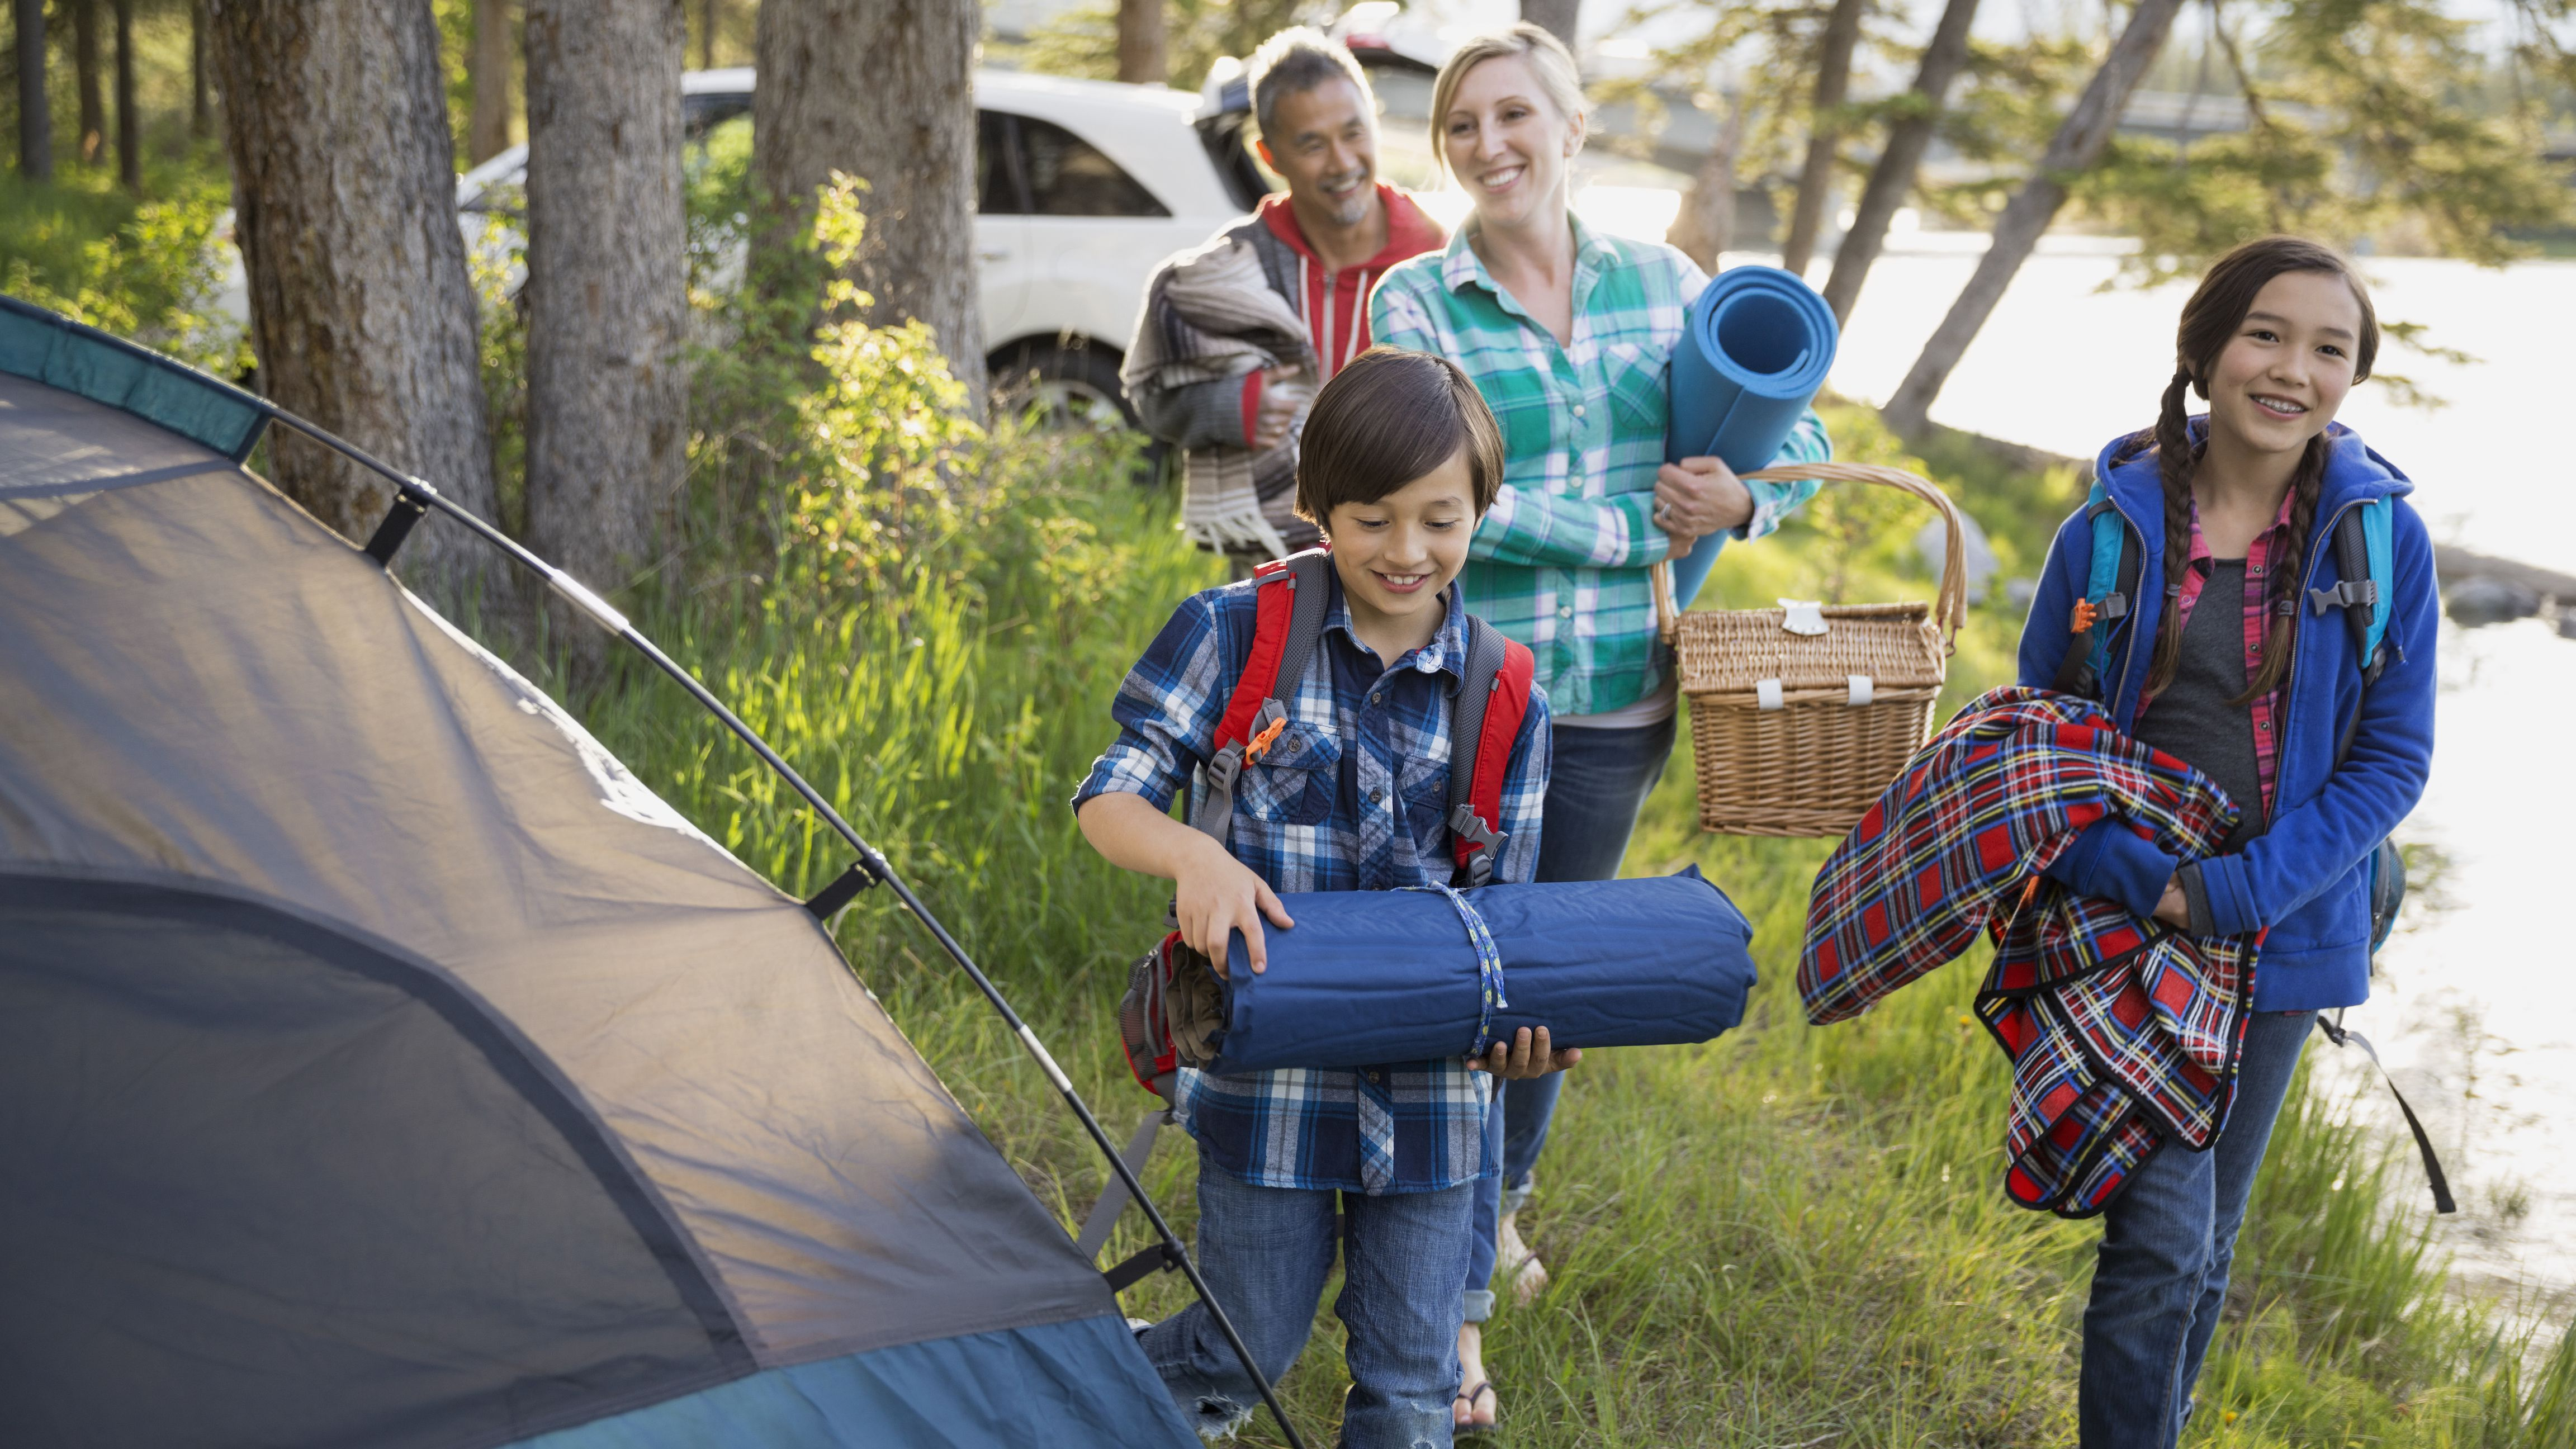 How to Plan a Successful Family Camping Trip